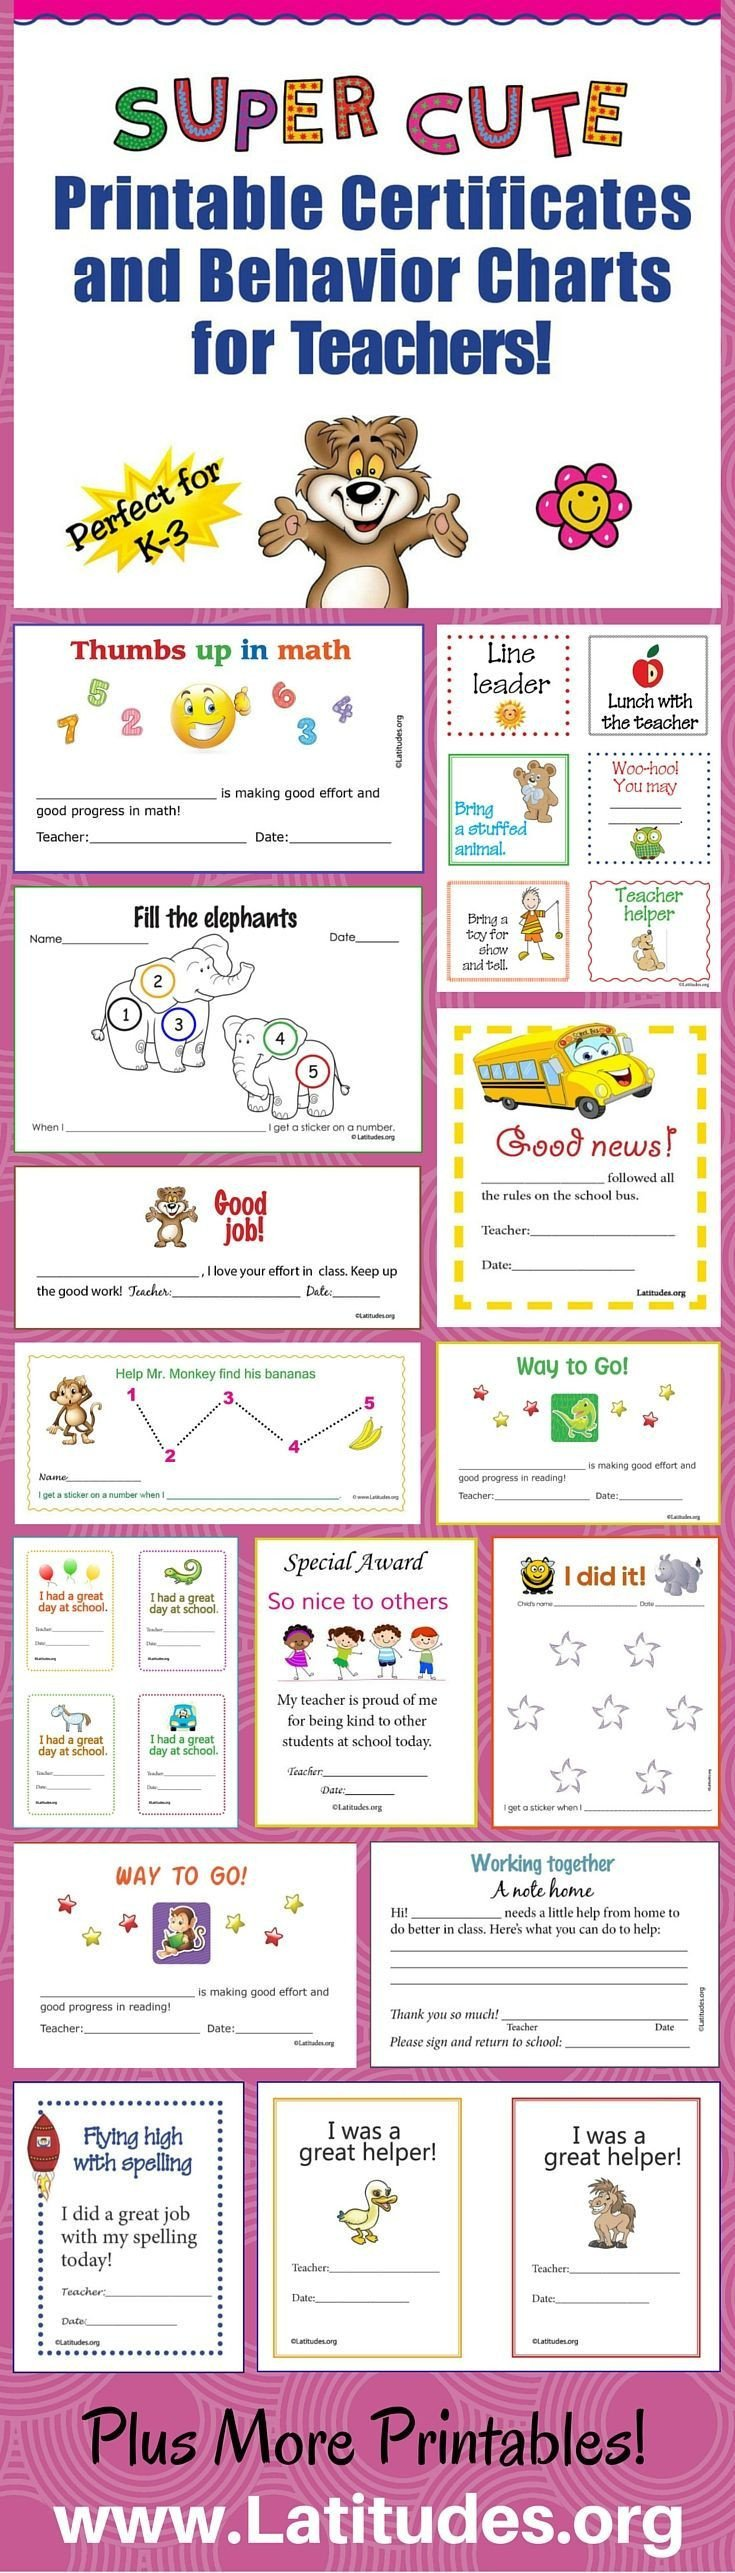 Behavior Charts for Teachers Free Super Cute Printable Certificates and Behavior Charts